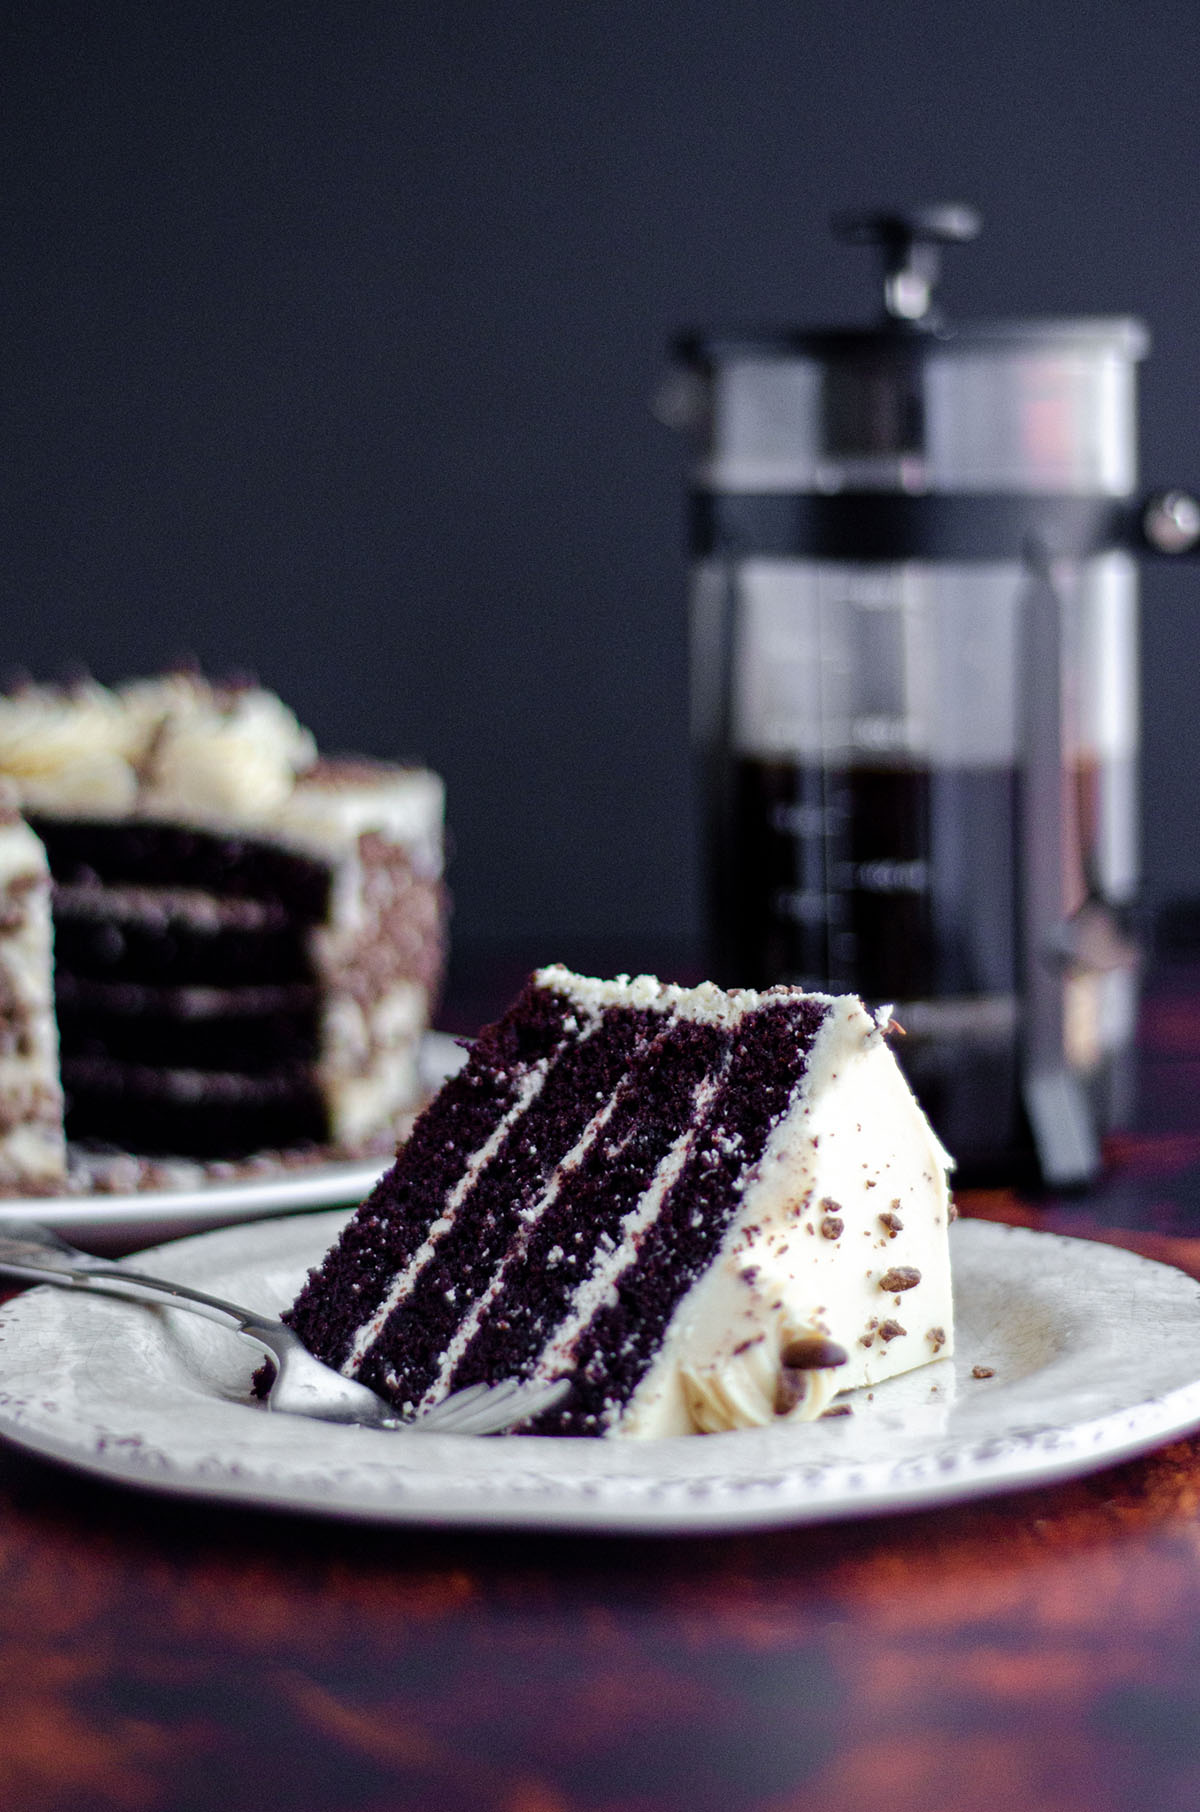 slice of mocha cake with coffee buttercream on a cream colored plate with a fork and a full cake and french press of coffee in the background